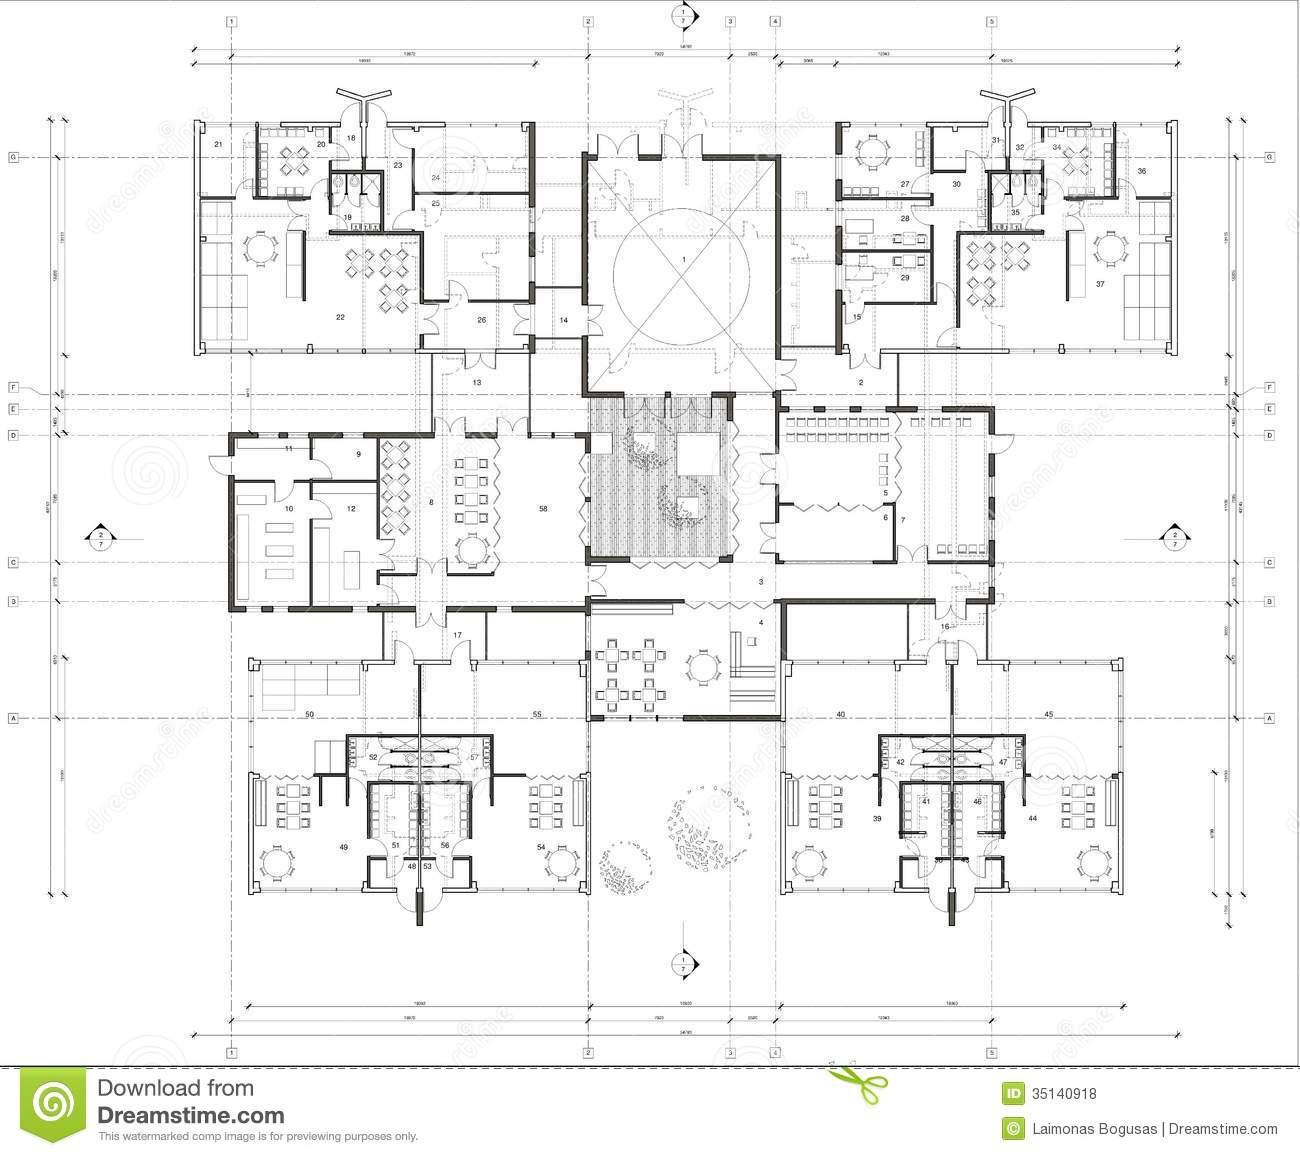 Stock Photo Bath Sponge Image11329810 additionally Royalty Free Stock Photos Floor Plan Kindergarten Drawing St Image35140918 together with Royalty Free Stock Photography Plastic Recycling Symbols Image11021787 moreover Wednesday Word On Interior Design 2 together with Numbered Photograph Collections. on floor plan paper